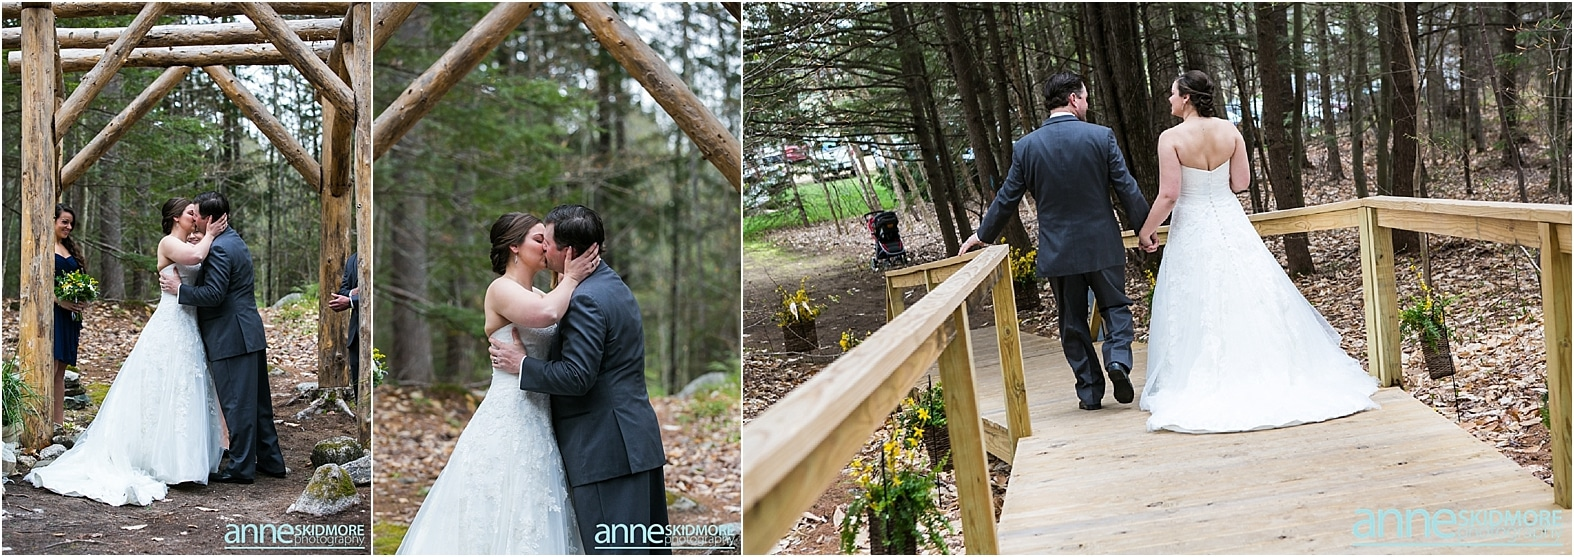 Hardy_Farm_Wedding_0024